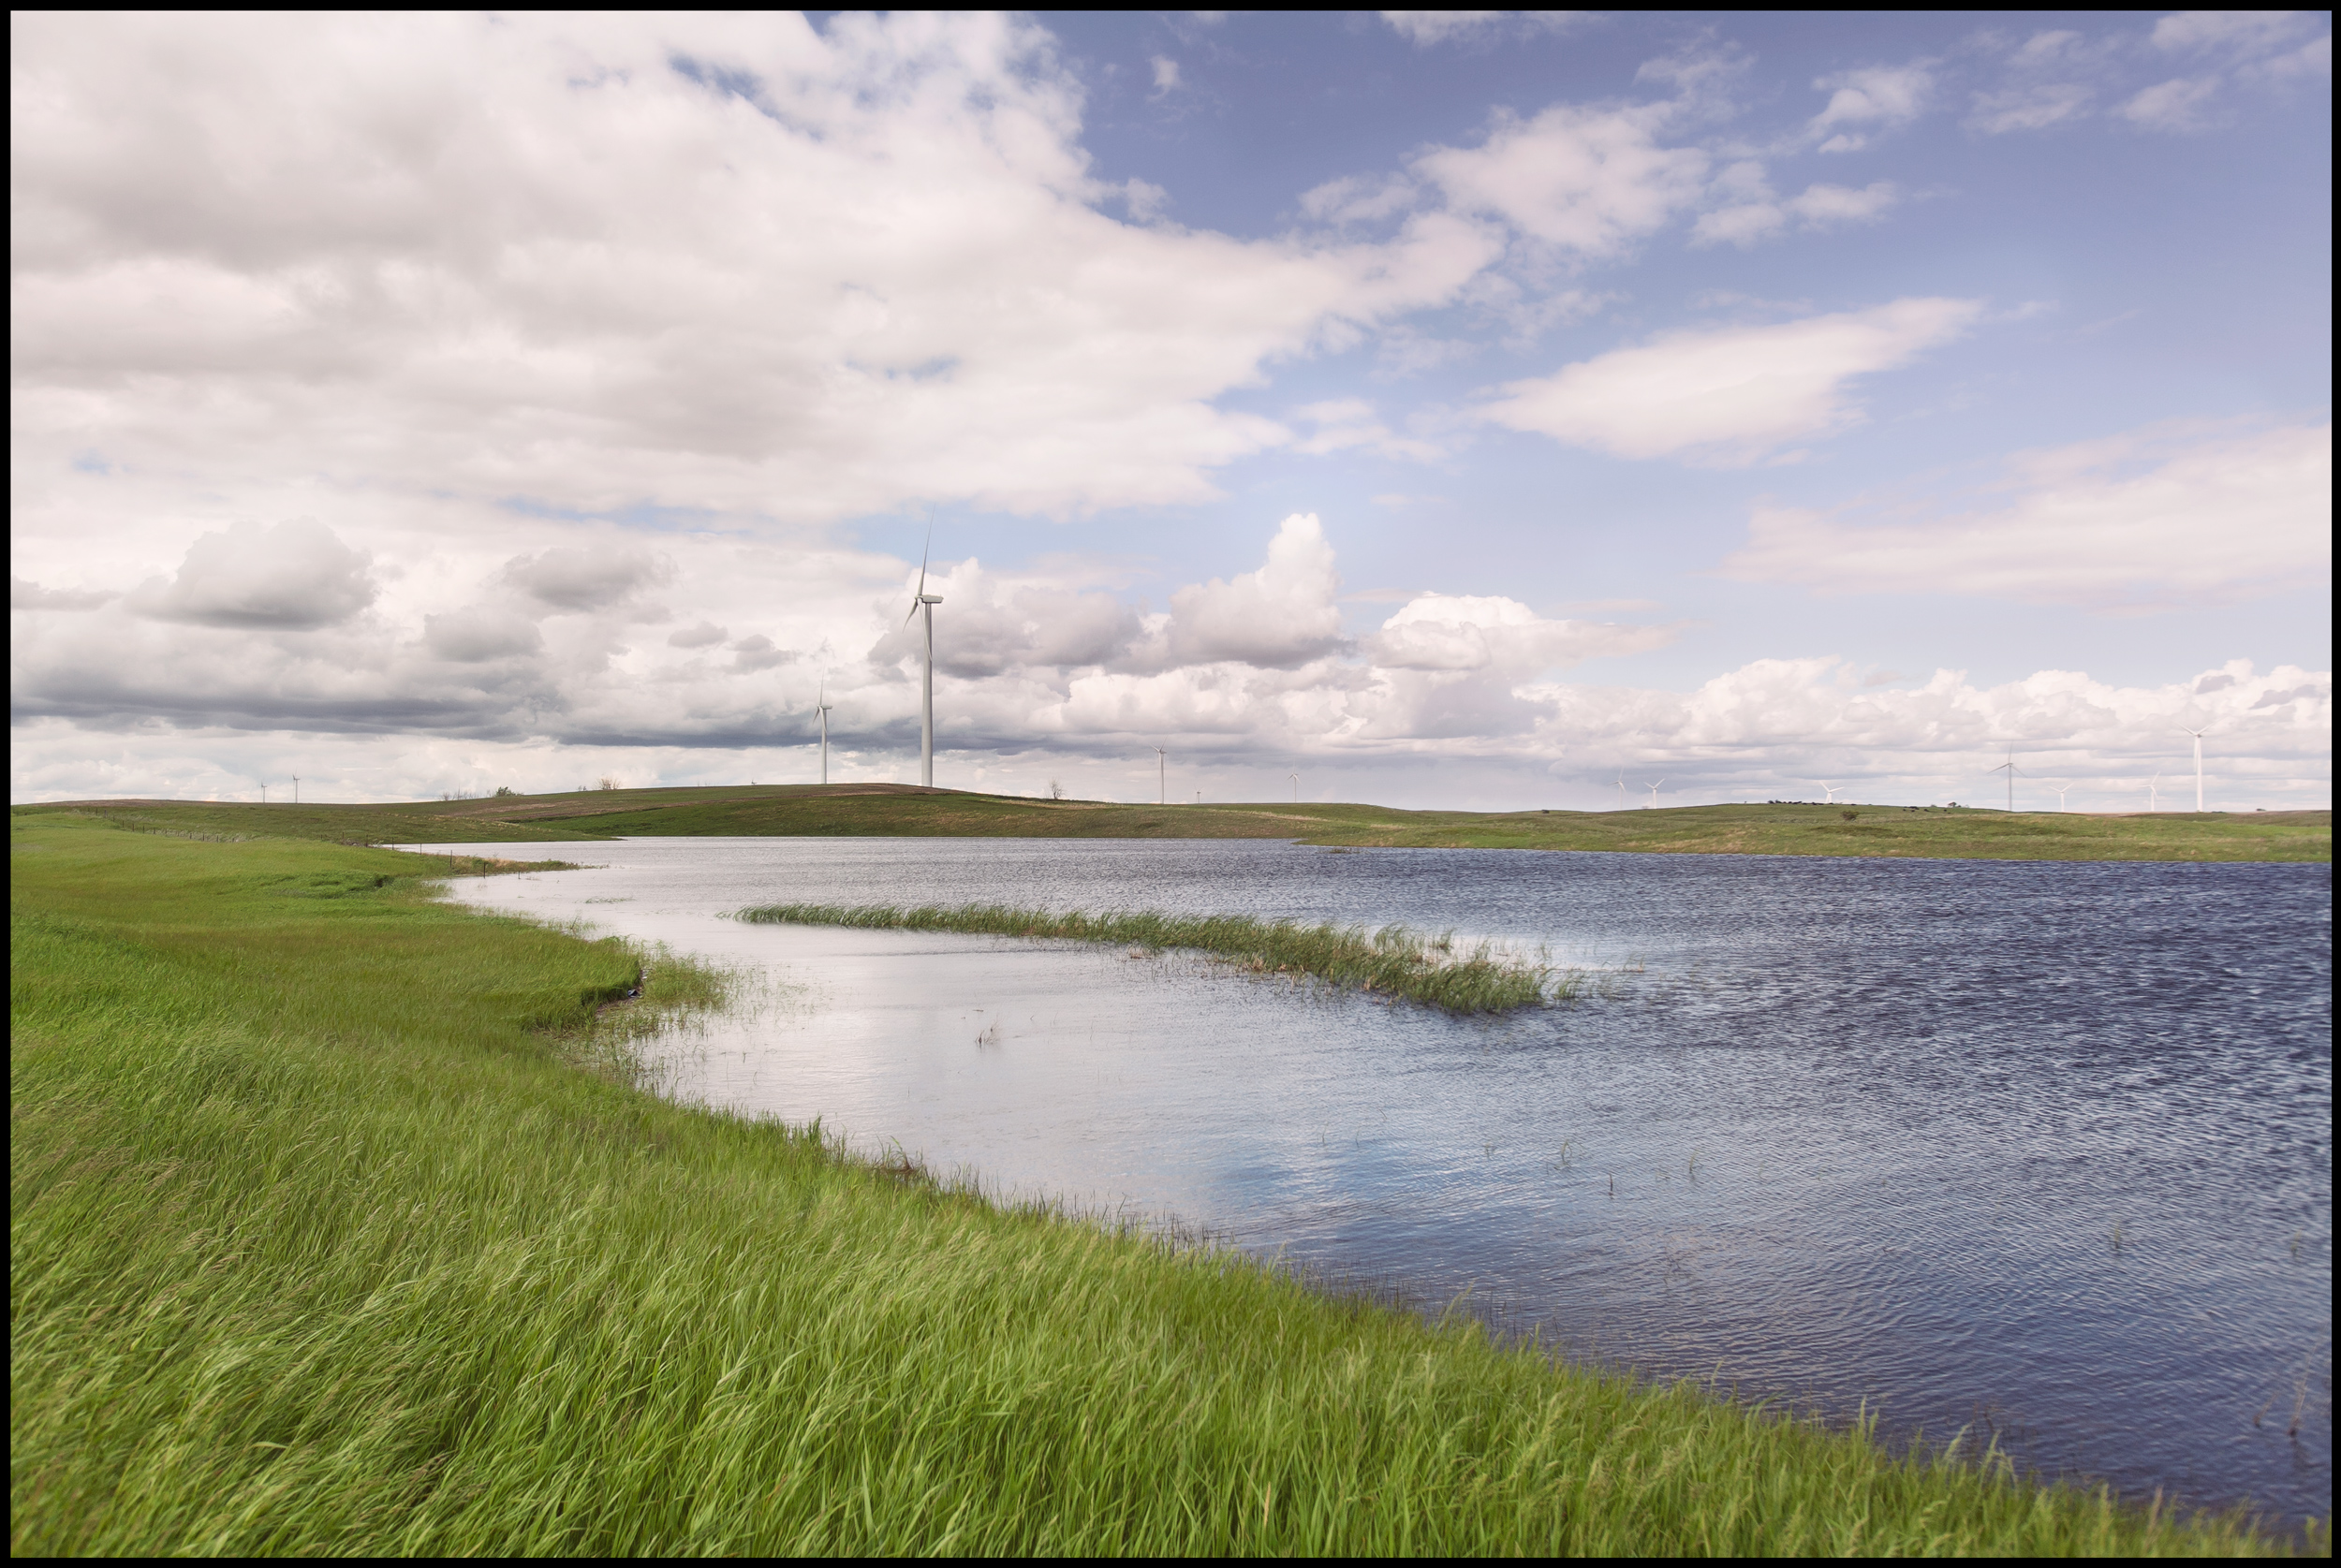 A drive between Bismarck and Minot North Dakota. A long winter and heavy rains have flooded the region and left small lakes scattered through-out the rolling hills.